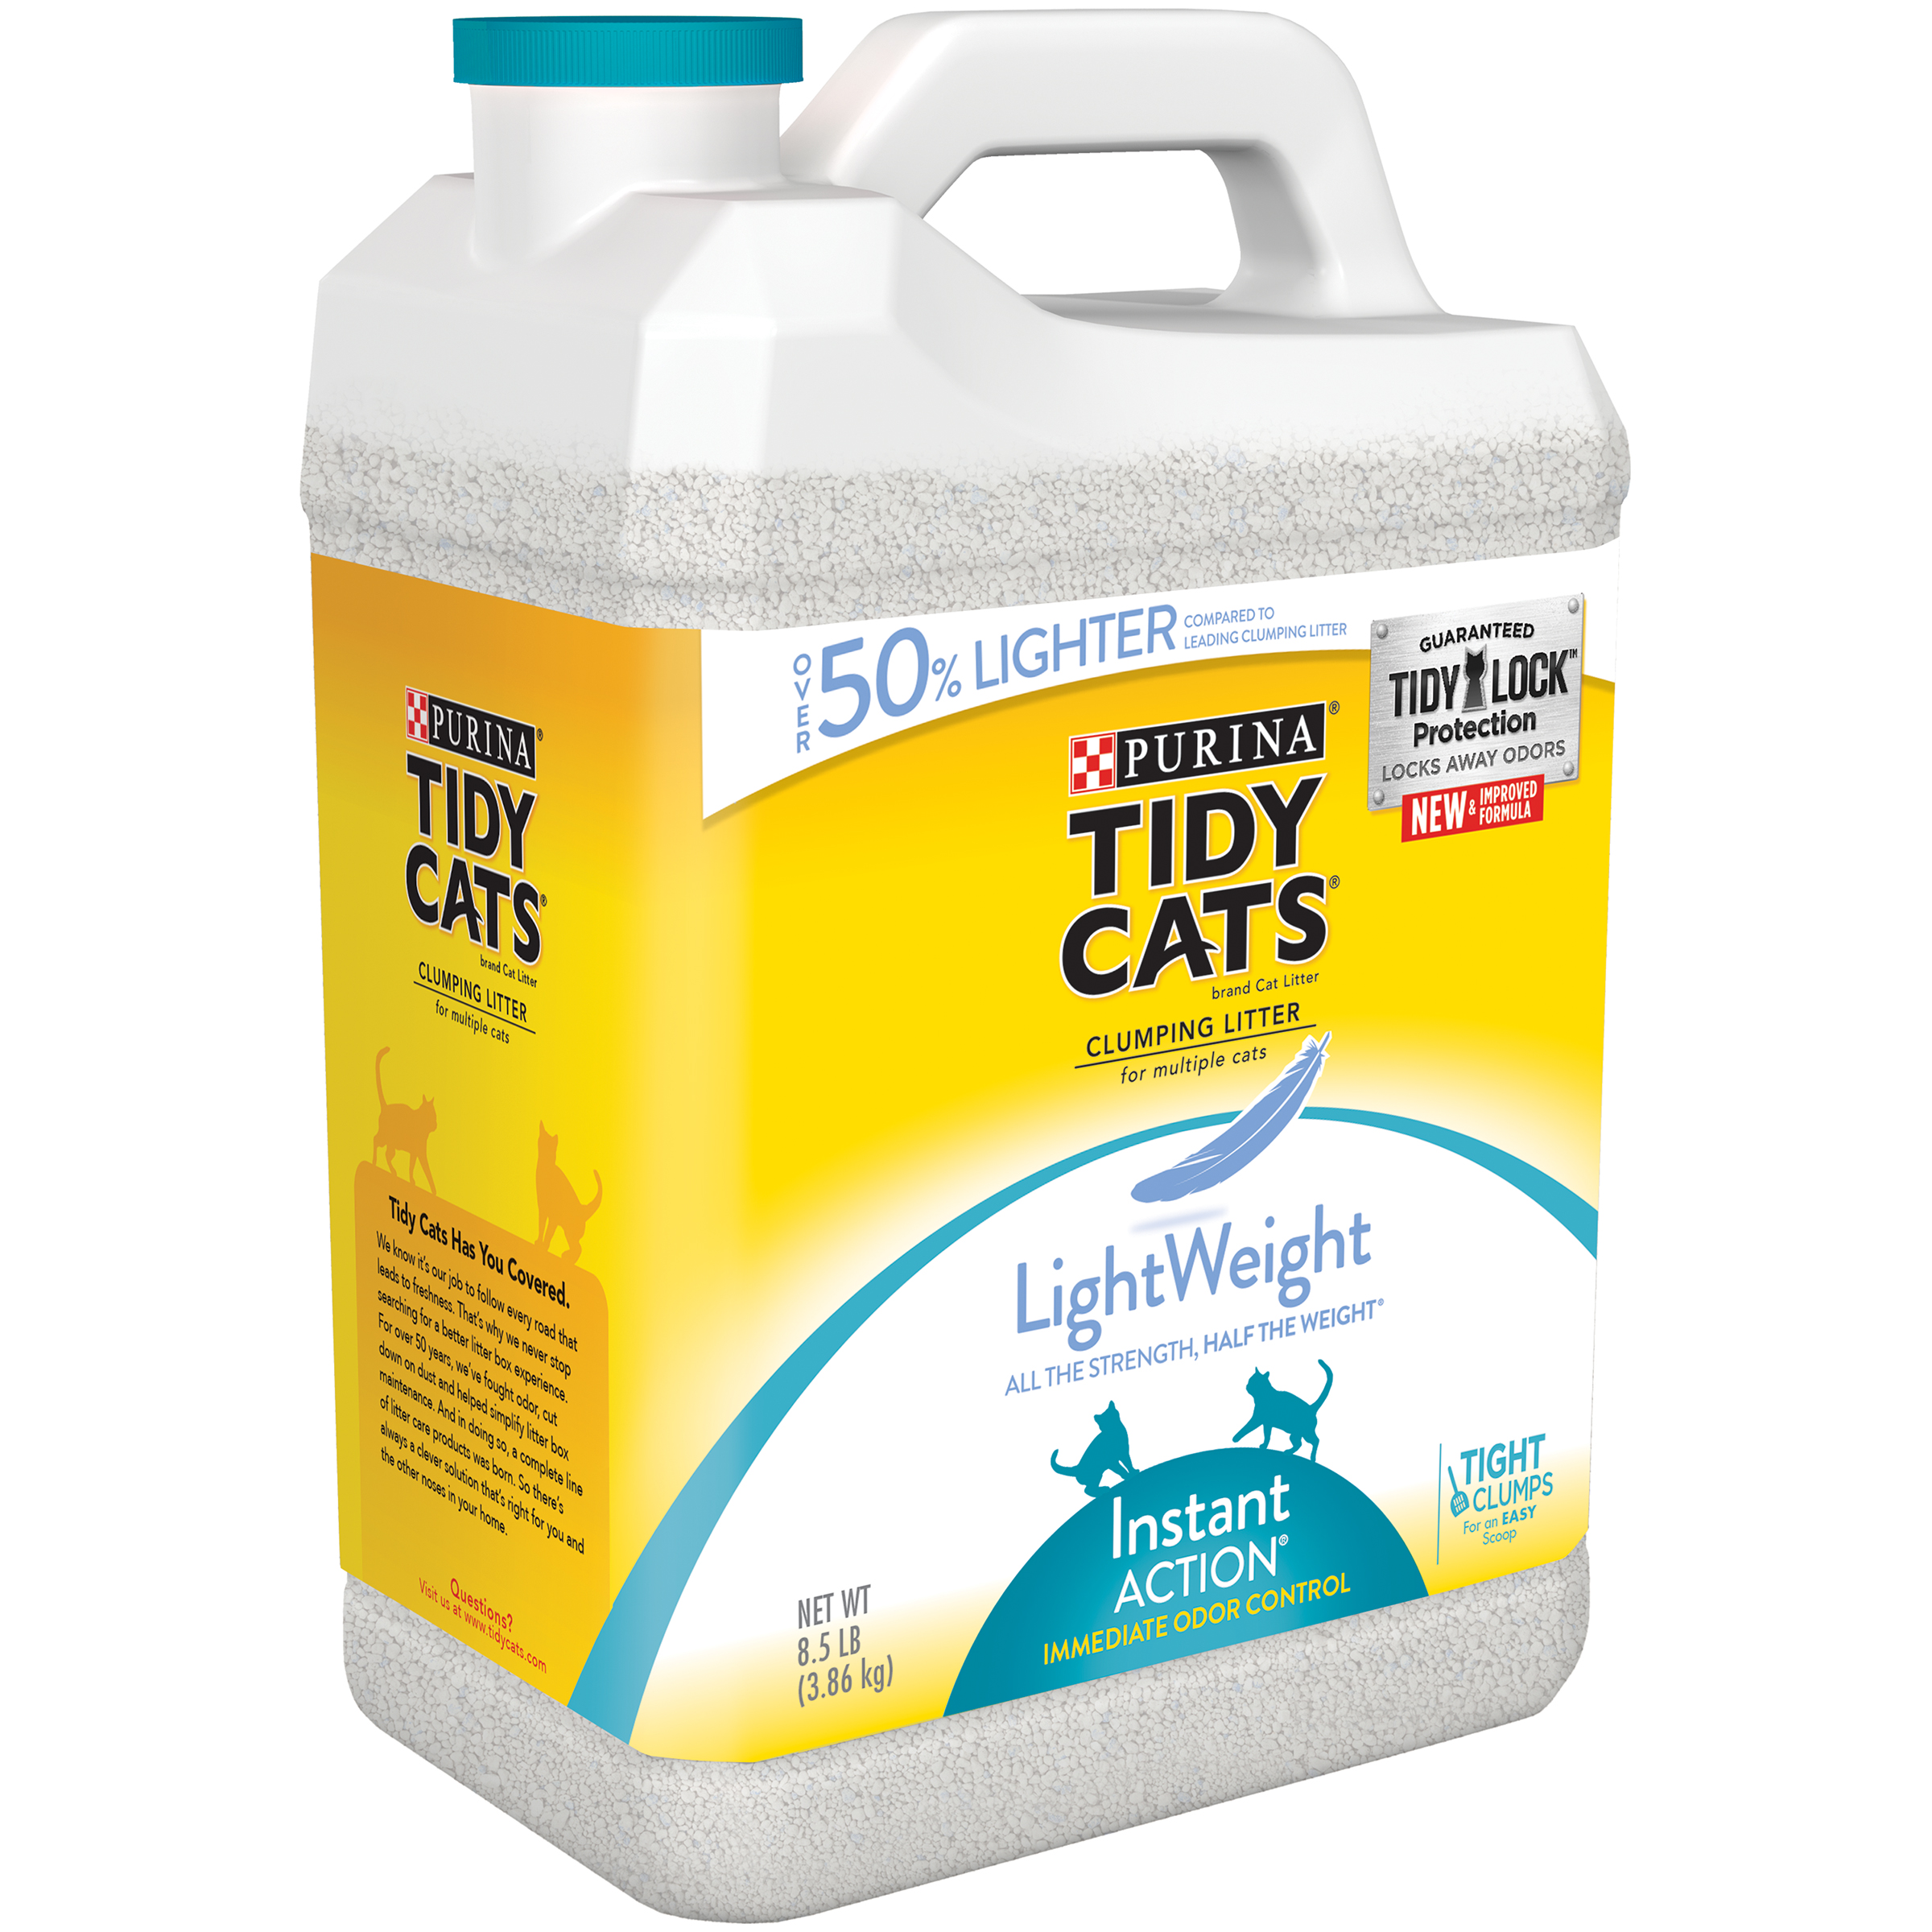 Purina Tidy Cats Lightweight Instant Action Clumping Cat Litter, 8.5-lb